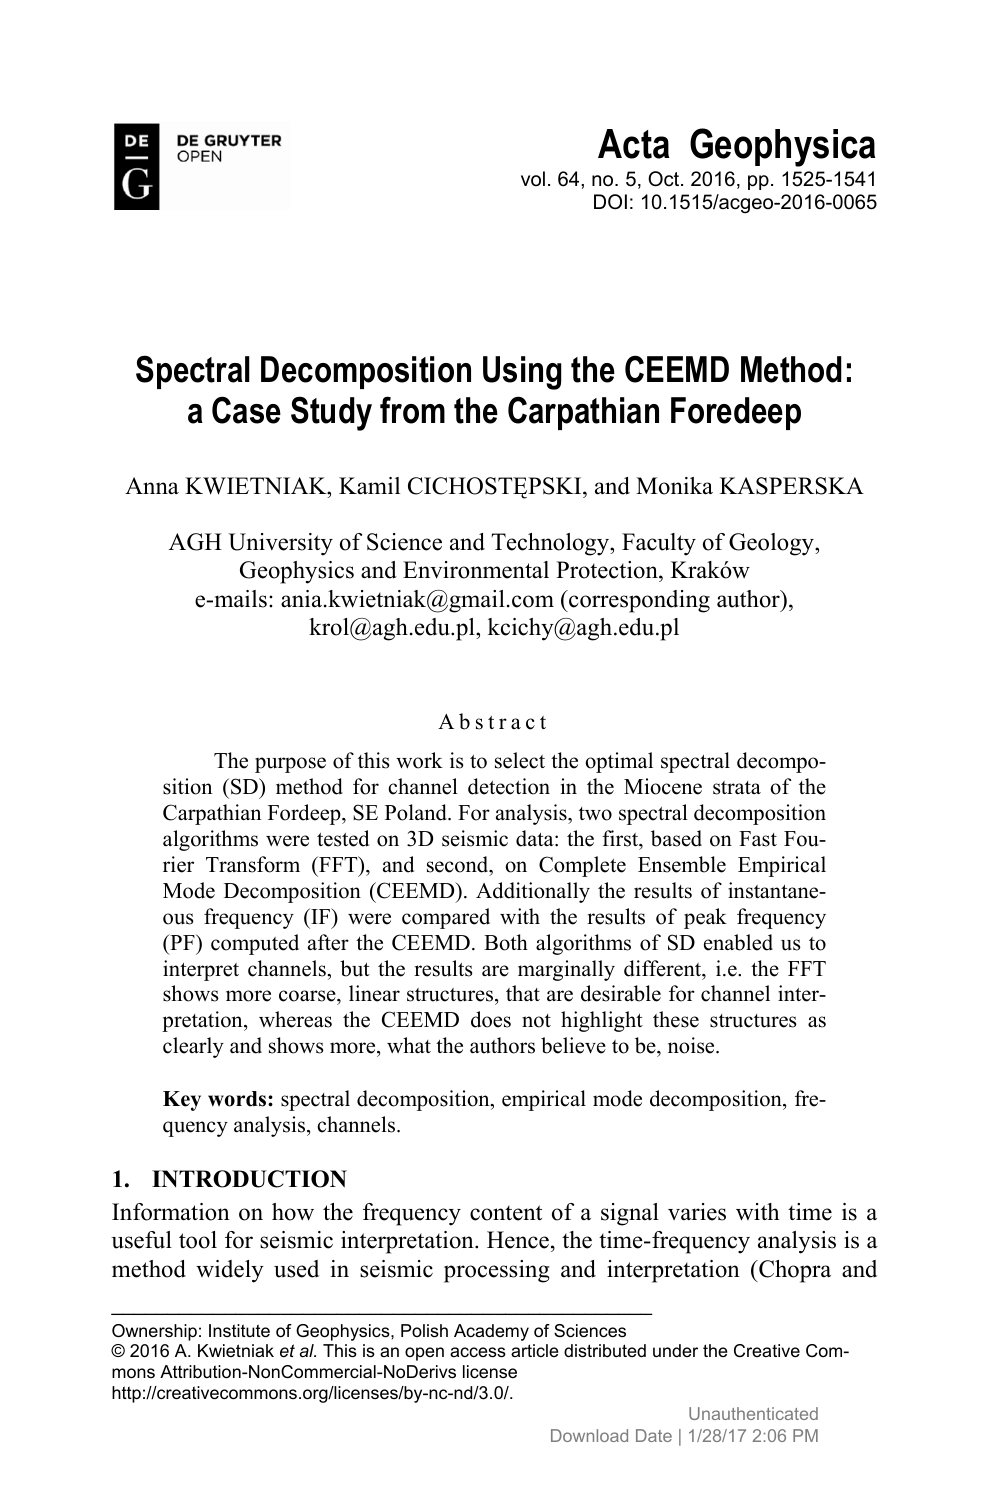 Spectral Decomposition Using the CEEMD Method: A Case Study from the